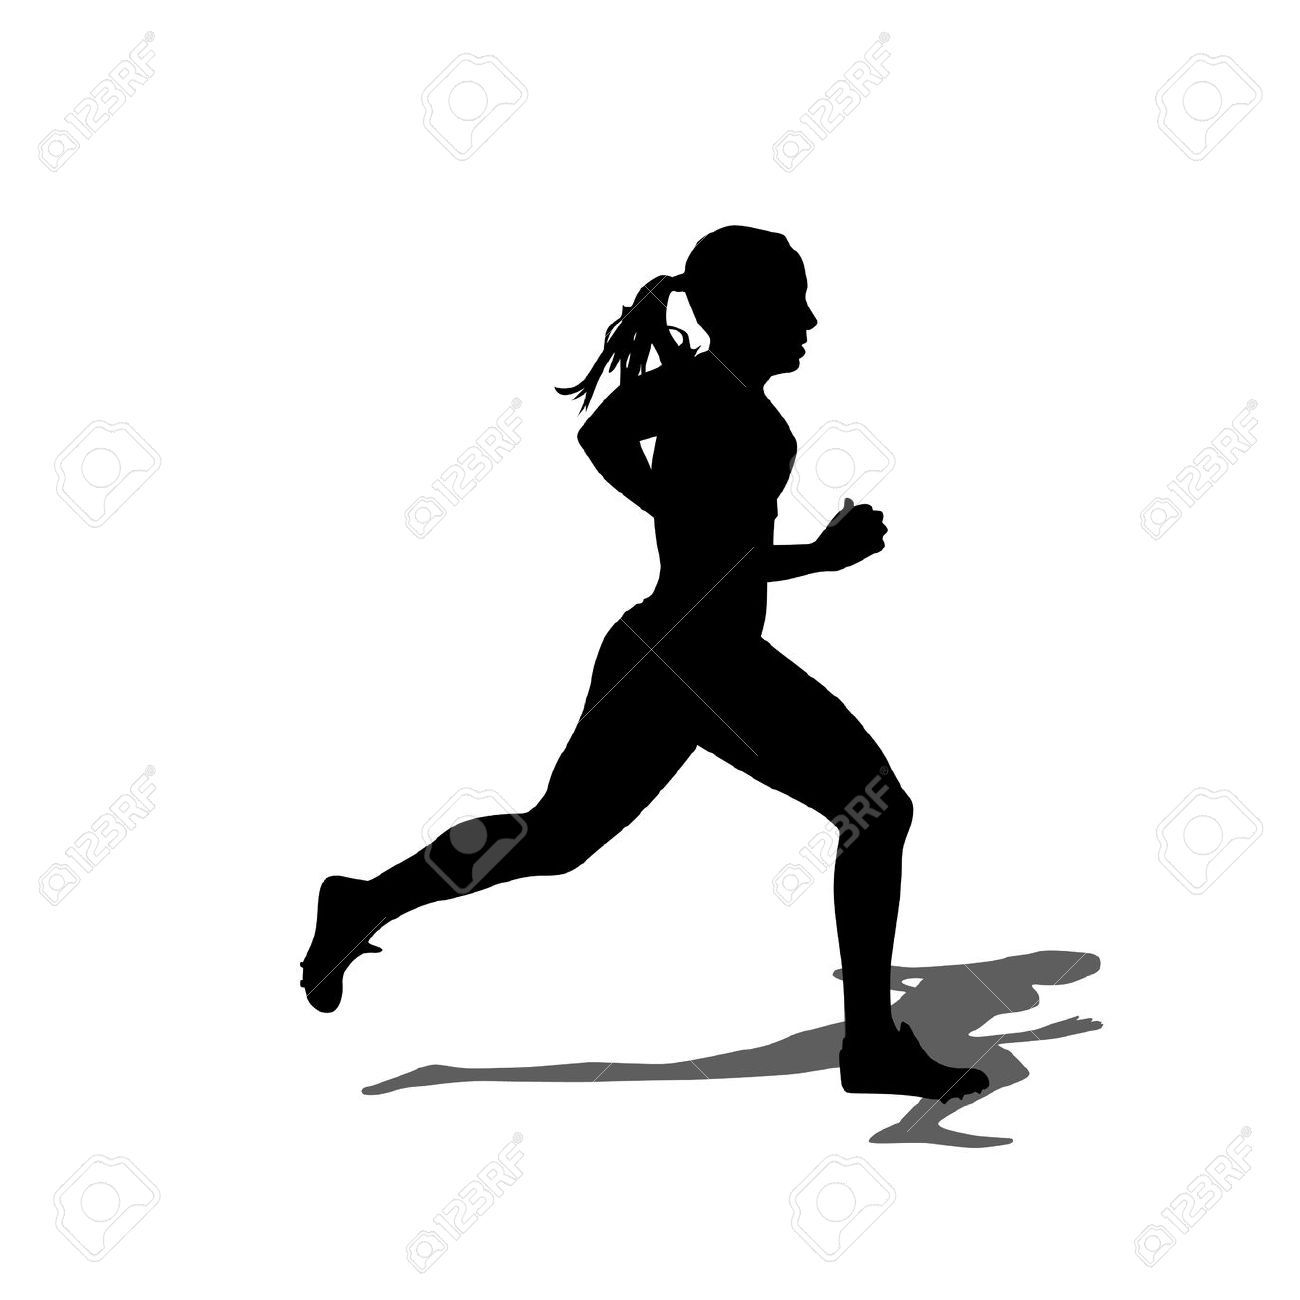 Marathon Runner Silhouette Images, Stock Pictures, Royalty.